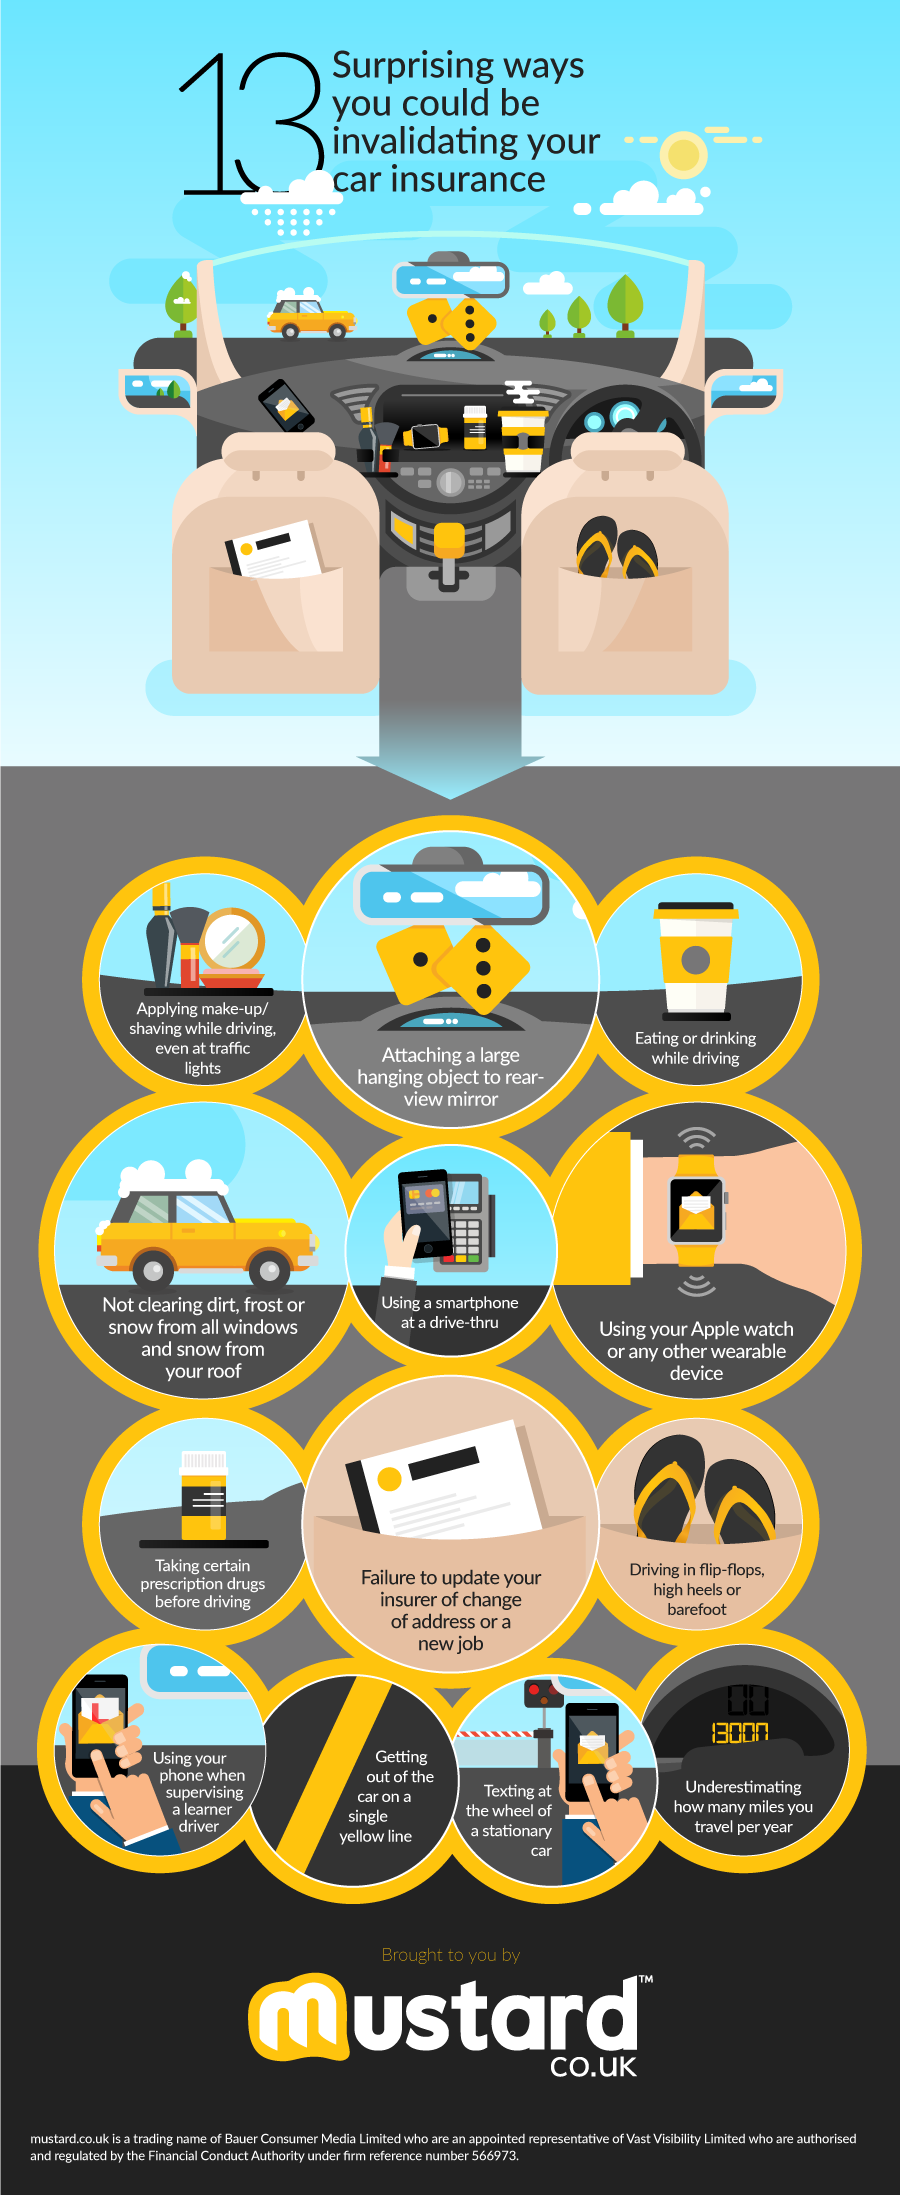 13-ways-to-invalidate-your-car-insurance-infographic